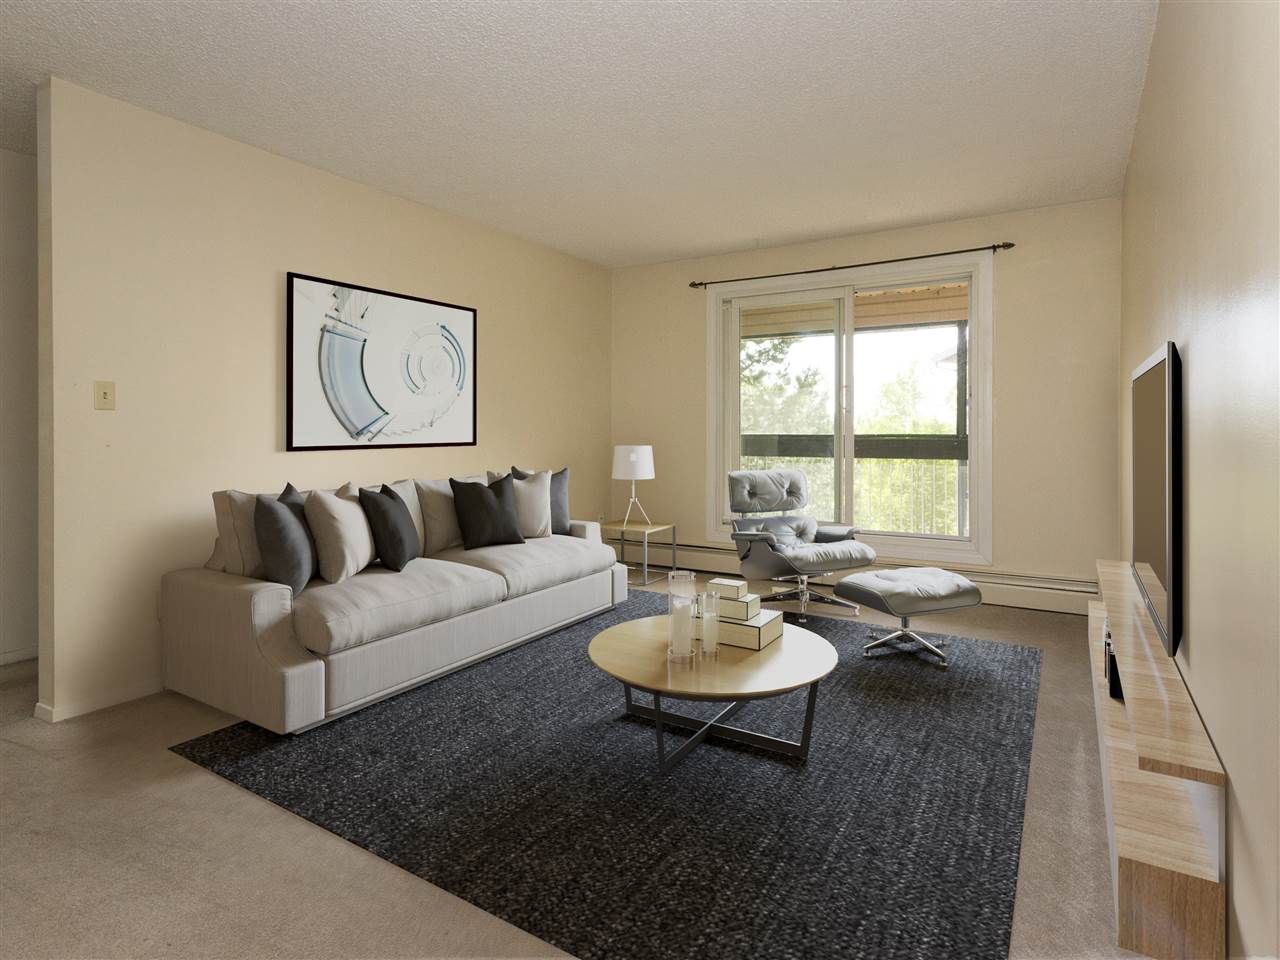 Don't miss this fantastic opportunity to enter the Real Estate Market at a very affordable price. This one bedroom condo is a top floor unit in a well run, established condo complex. It has a very spacious living room and the west facing balcony has plenty of room for relaxation. It's close to amenities such as shopping, schools and transit. Proximity to the Anthony Henday makes it easy to access all parts of the city. The low price and condo fees make this condo an excellent purchase for first time buyers and savvy investors.